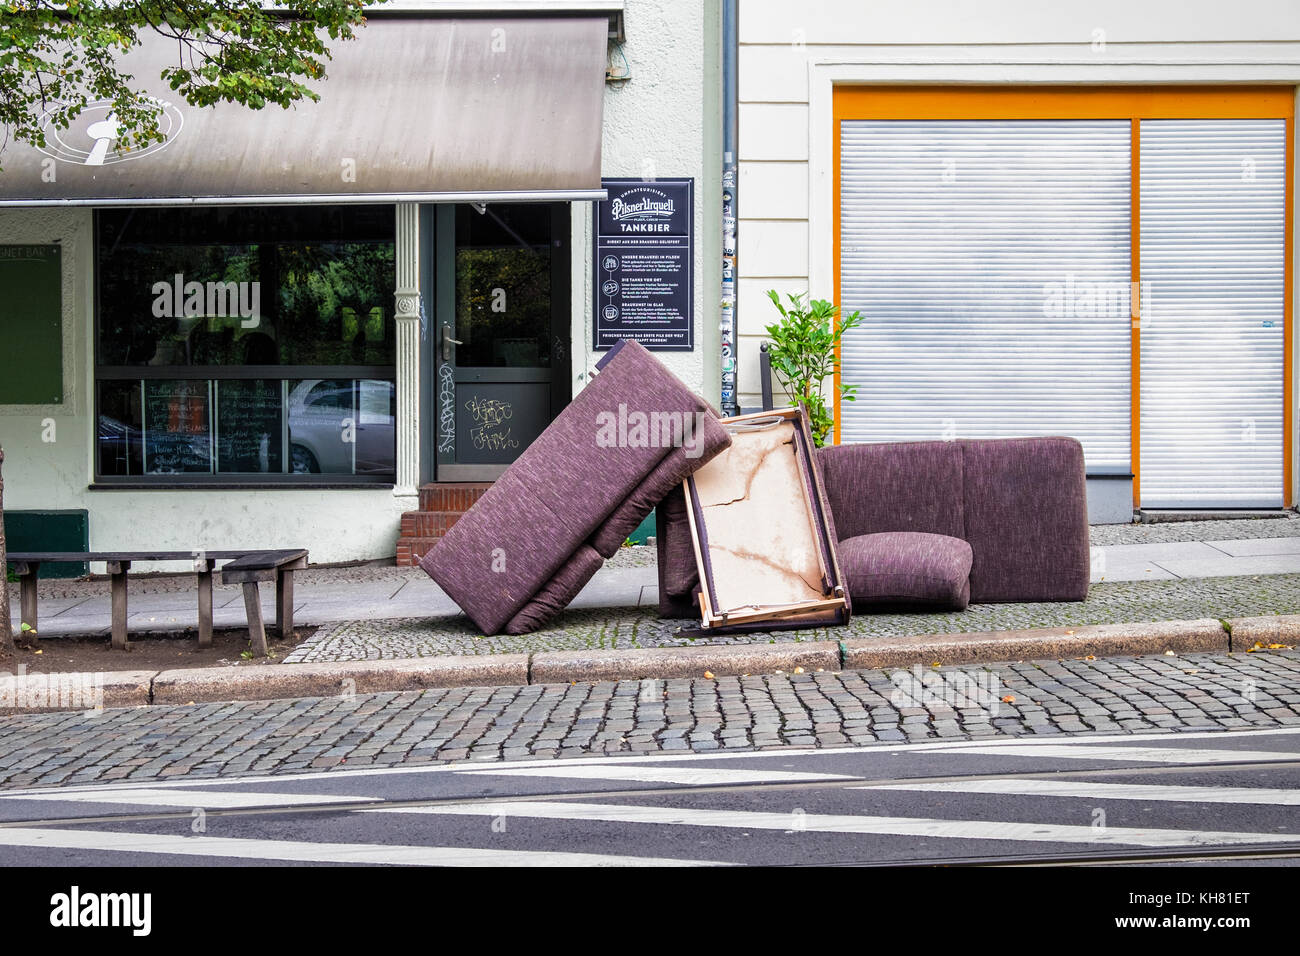 Germnay,Berlin, Abandoned Furniture On City Pavement Outside Pub, Dumped  Couches, Trashed